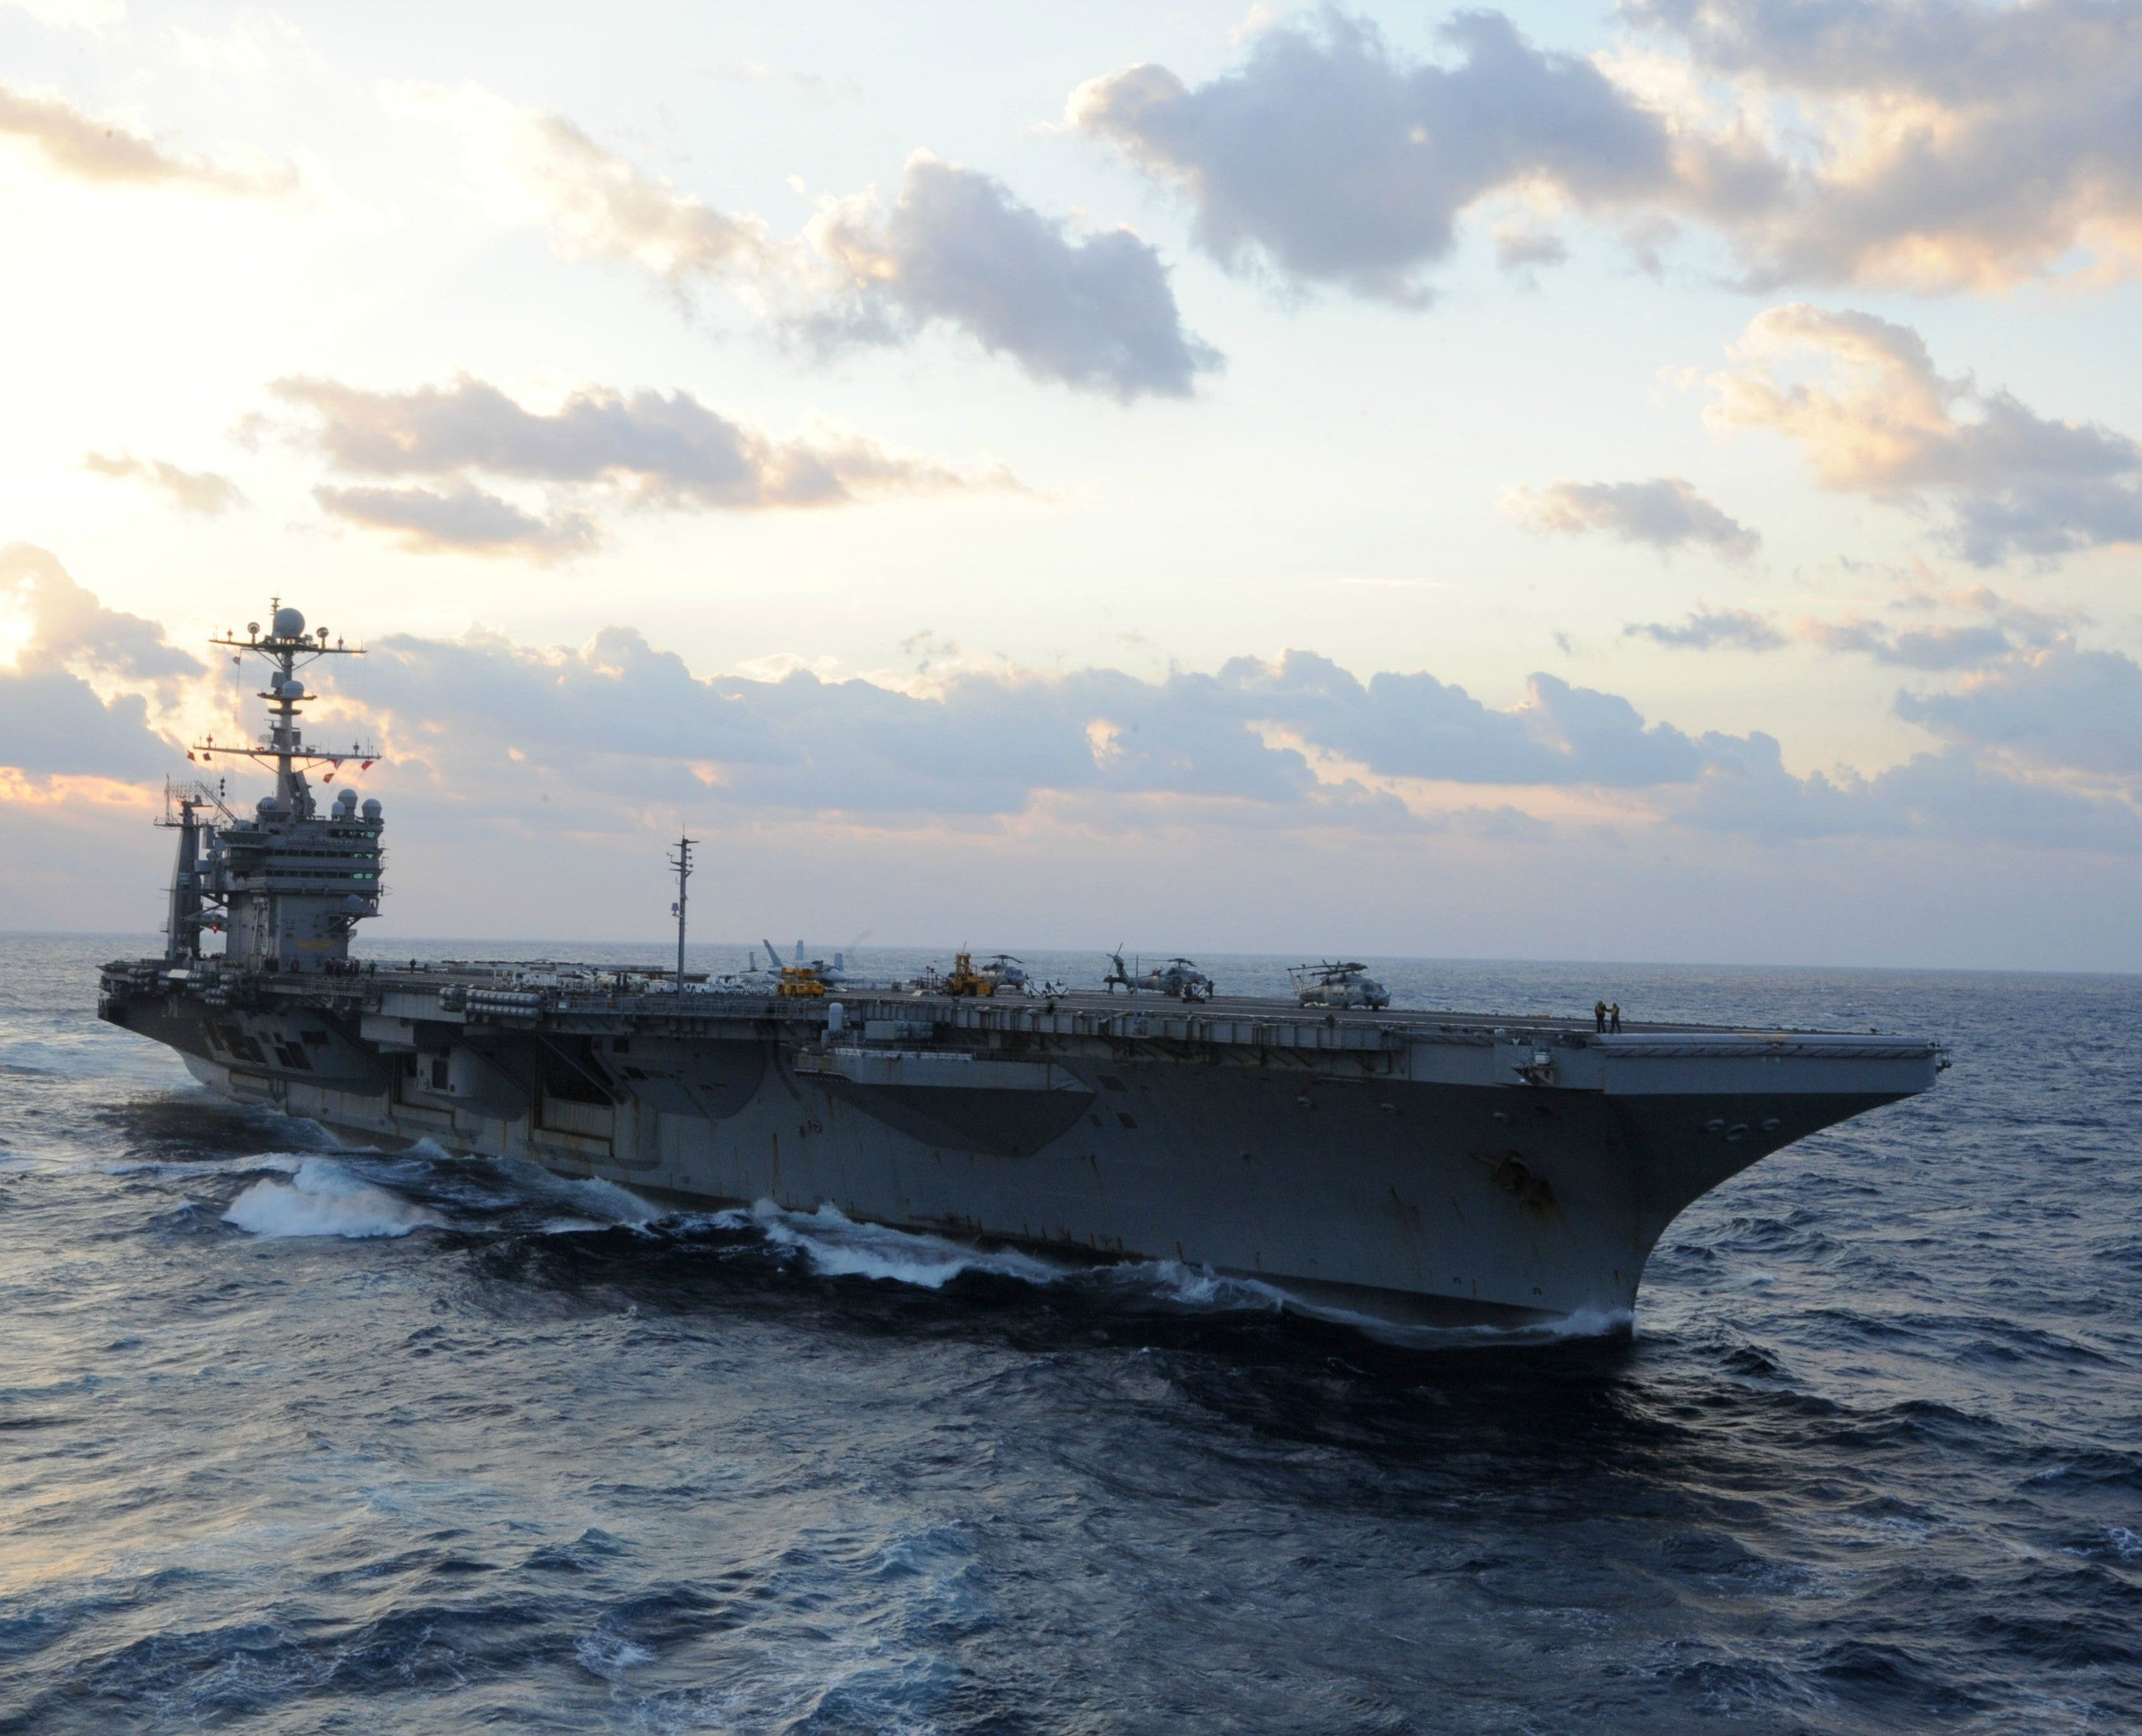 "USS George Washington CVN-73 Western Pacific Ocean December 2, 2013 - 8 x 10"" Photograph on Metallic Paper"